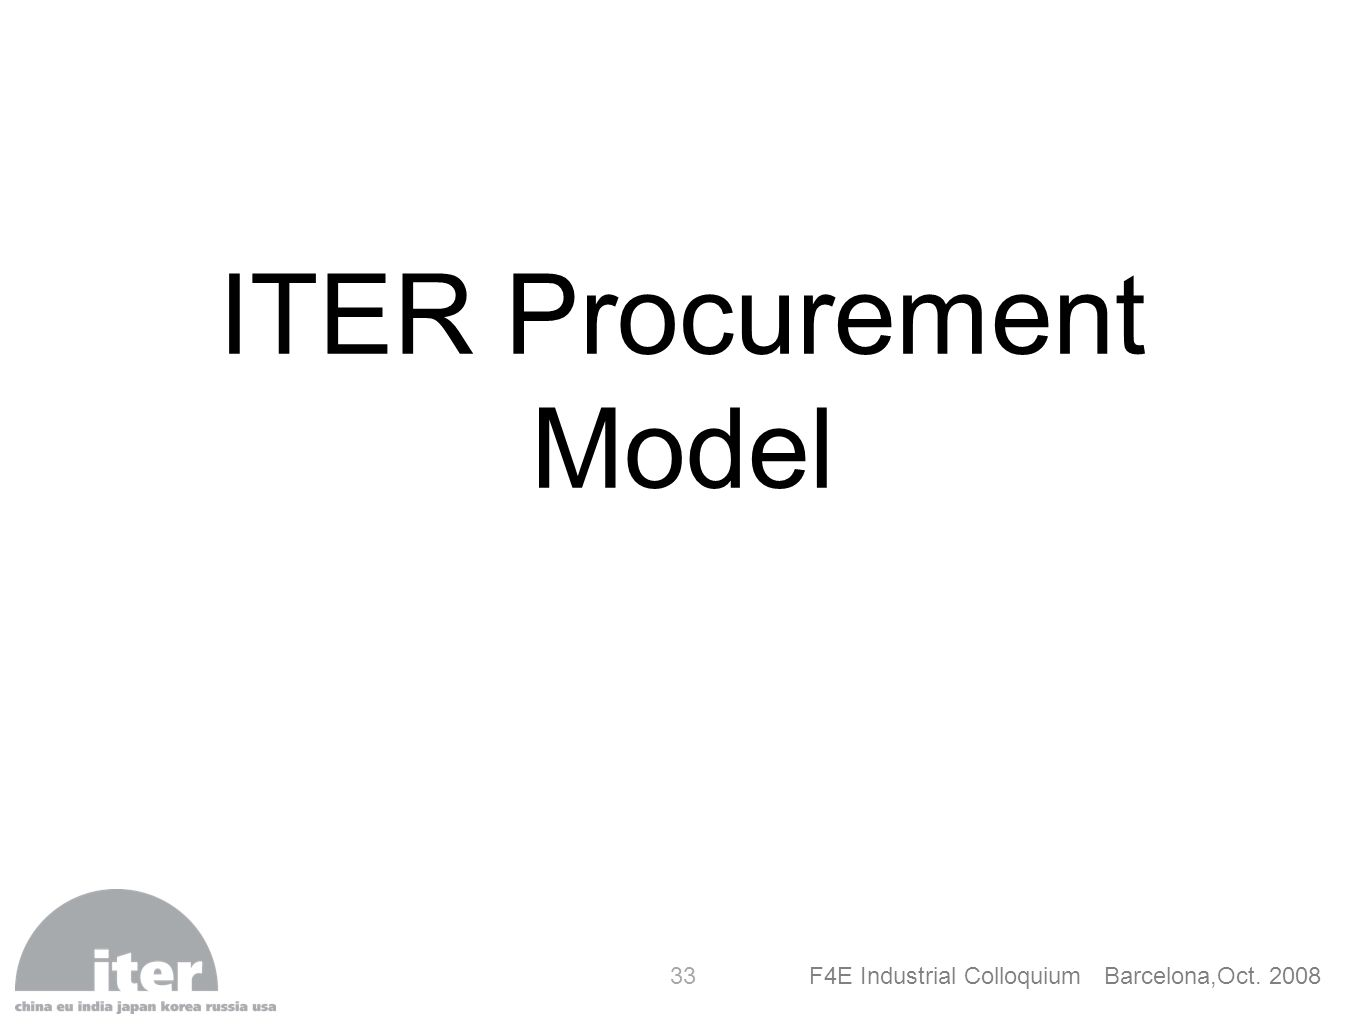 ITER Procurement Model